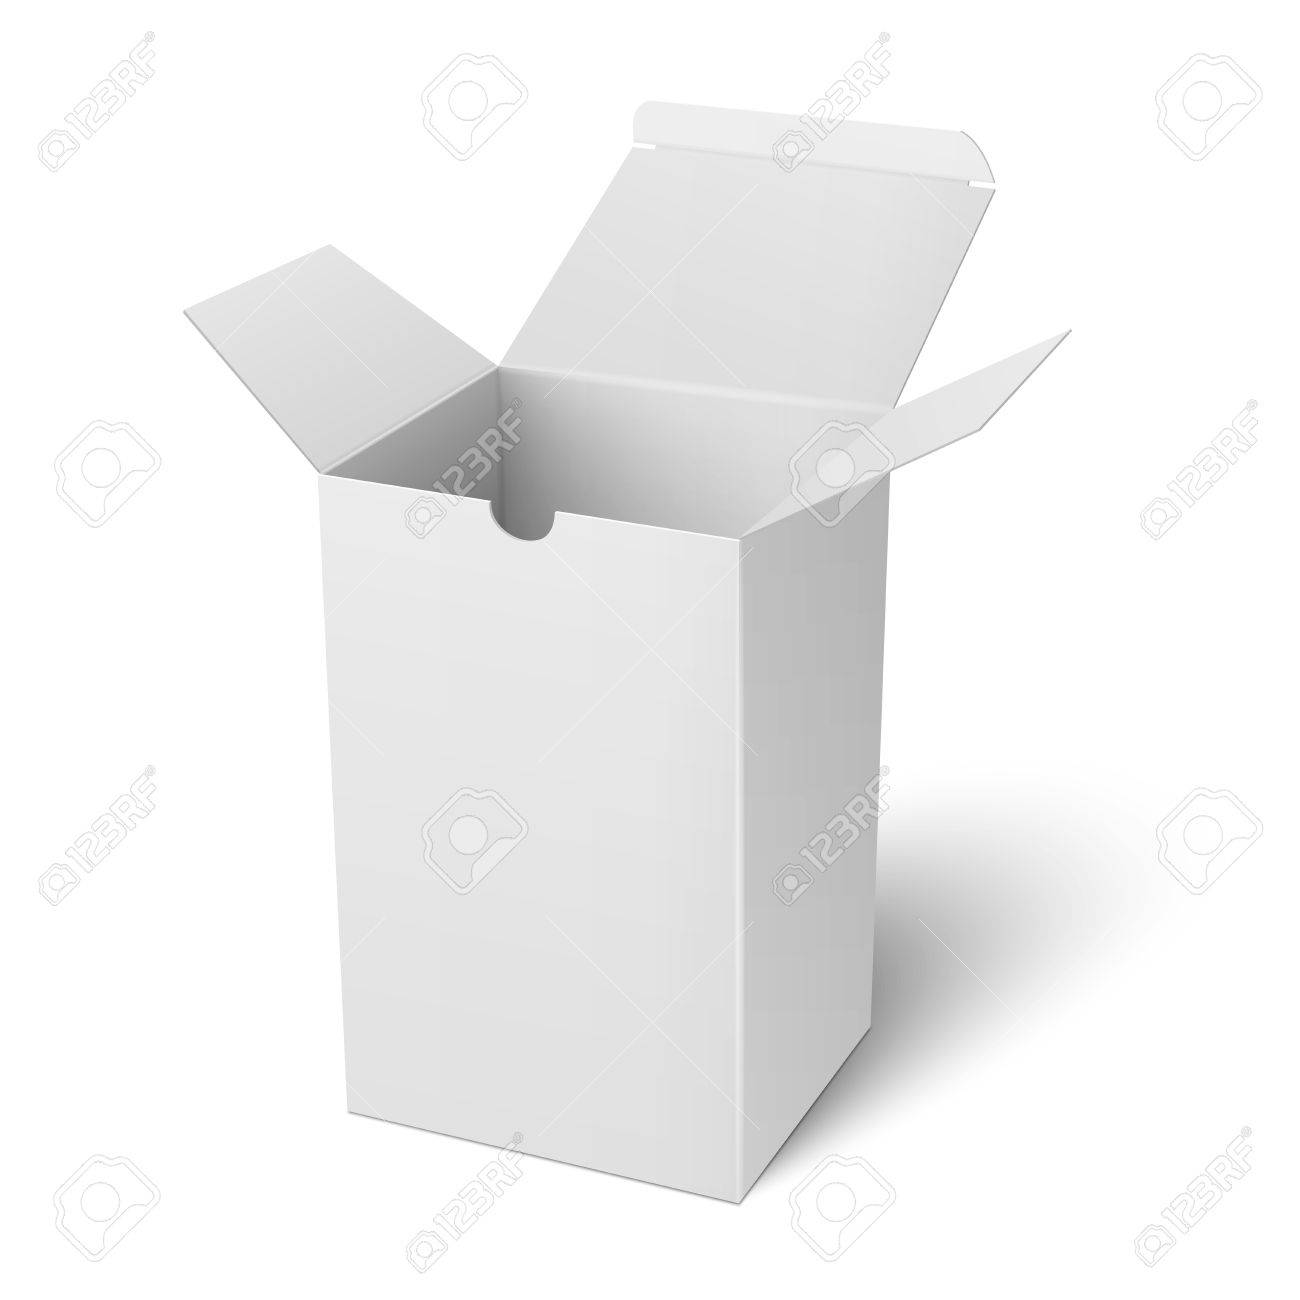 Blank Open Vertical Paper Or Cardboard Box Template Standing ...